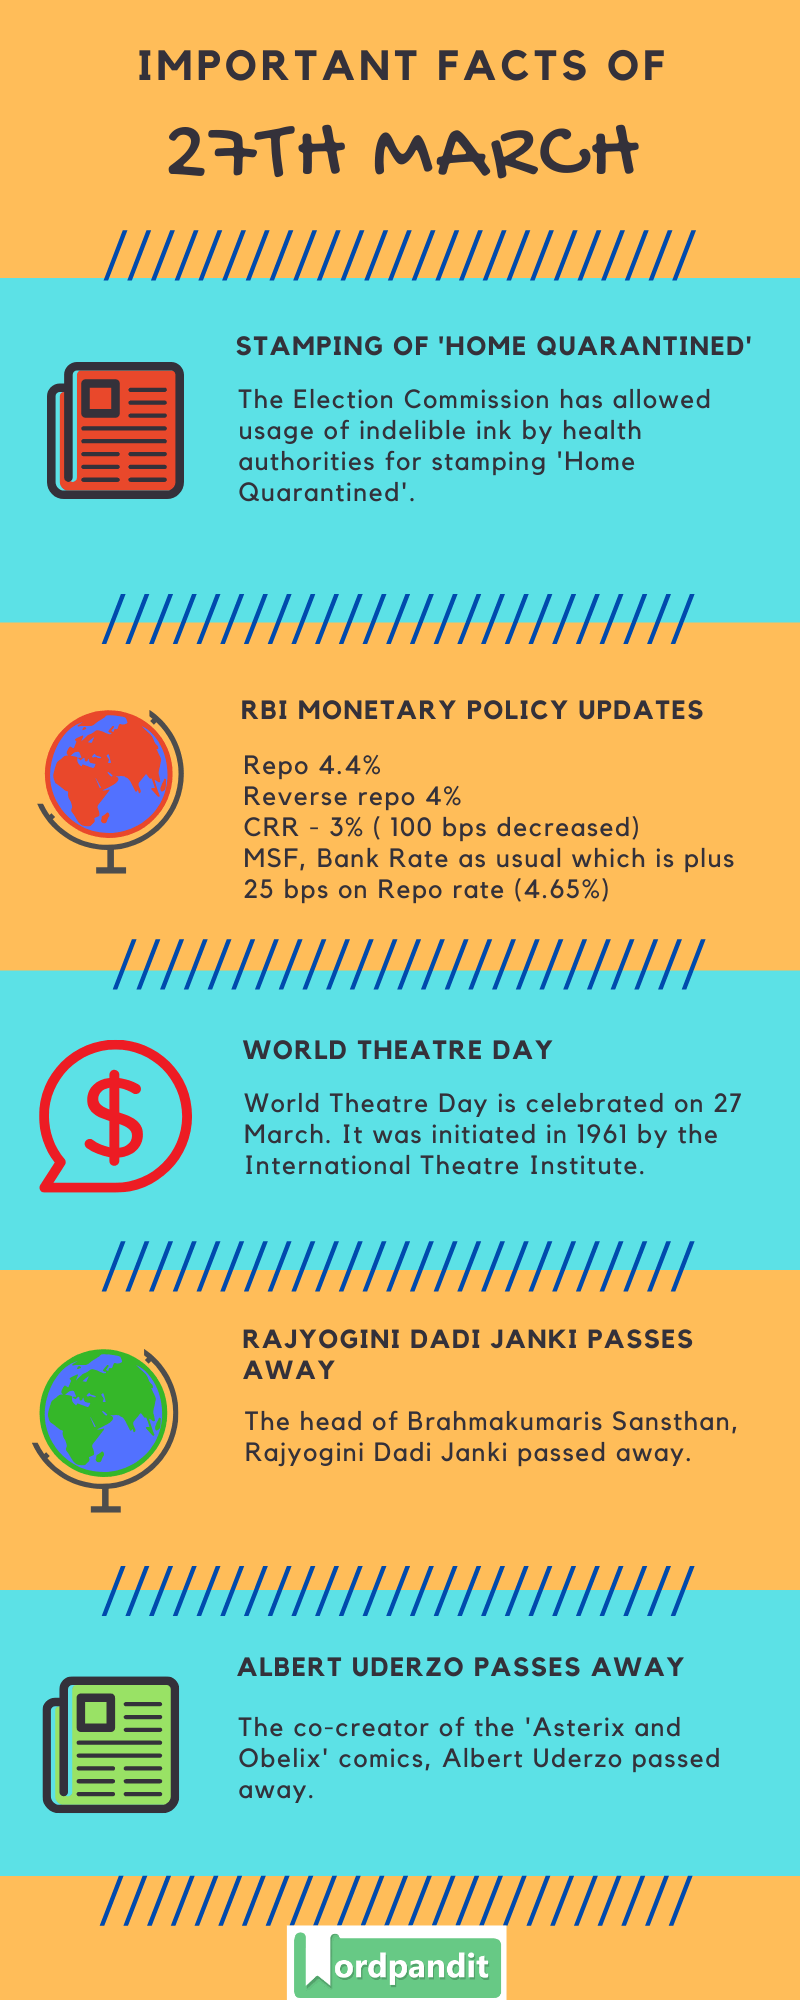 Daily Current Affairs 27 March 2020 Current Affairs Quiz 27 March 2020 Current Affairs Infographic